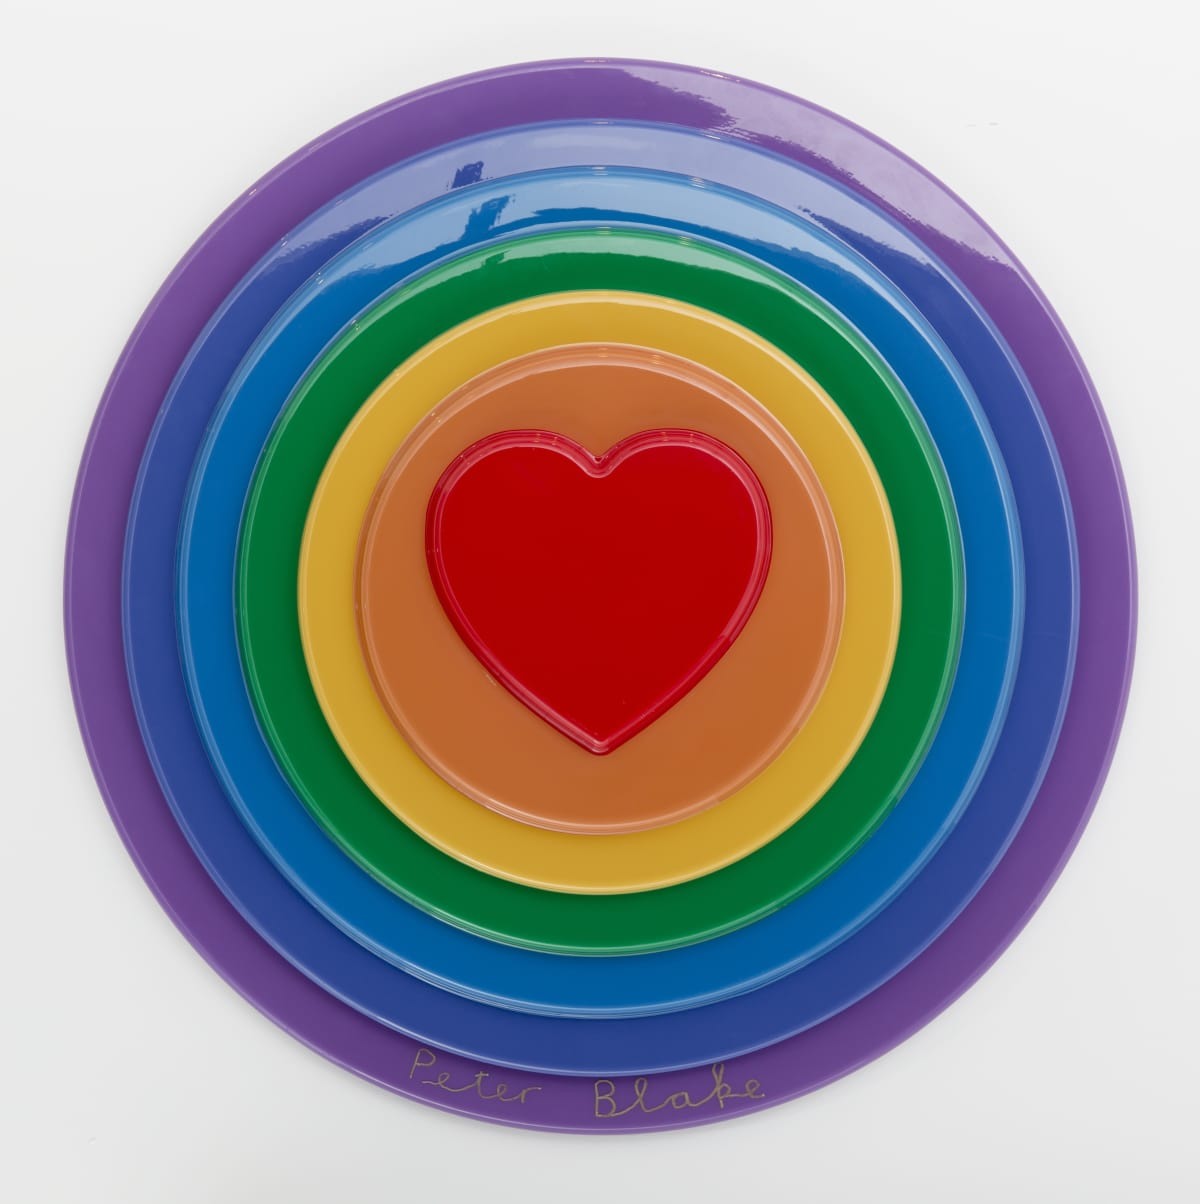 Peter Blake Rainbow Target, 2016 Vacuum formed plastic, paint 69 x 69 x 10 cm Edition of 100 Signed and numbered